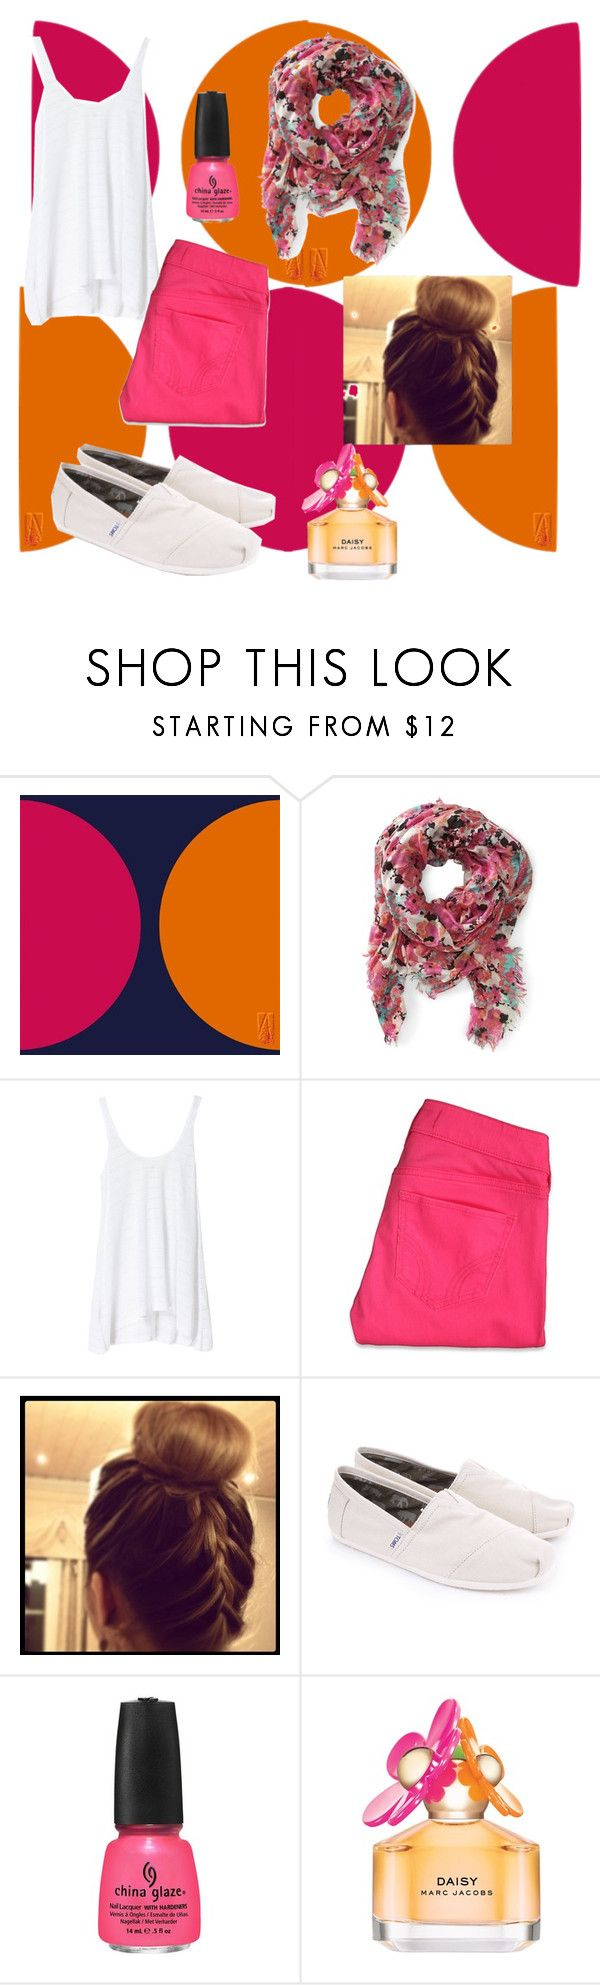 """Pink"" by deeda-ferreira ❤ liked on Polyvore featuring Zara, Hollister Co., TOMS, China Glaze and Marc Jacobs"